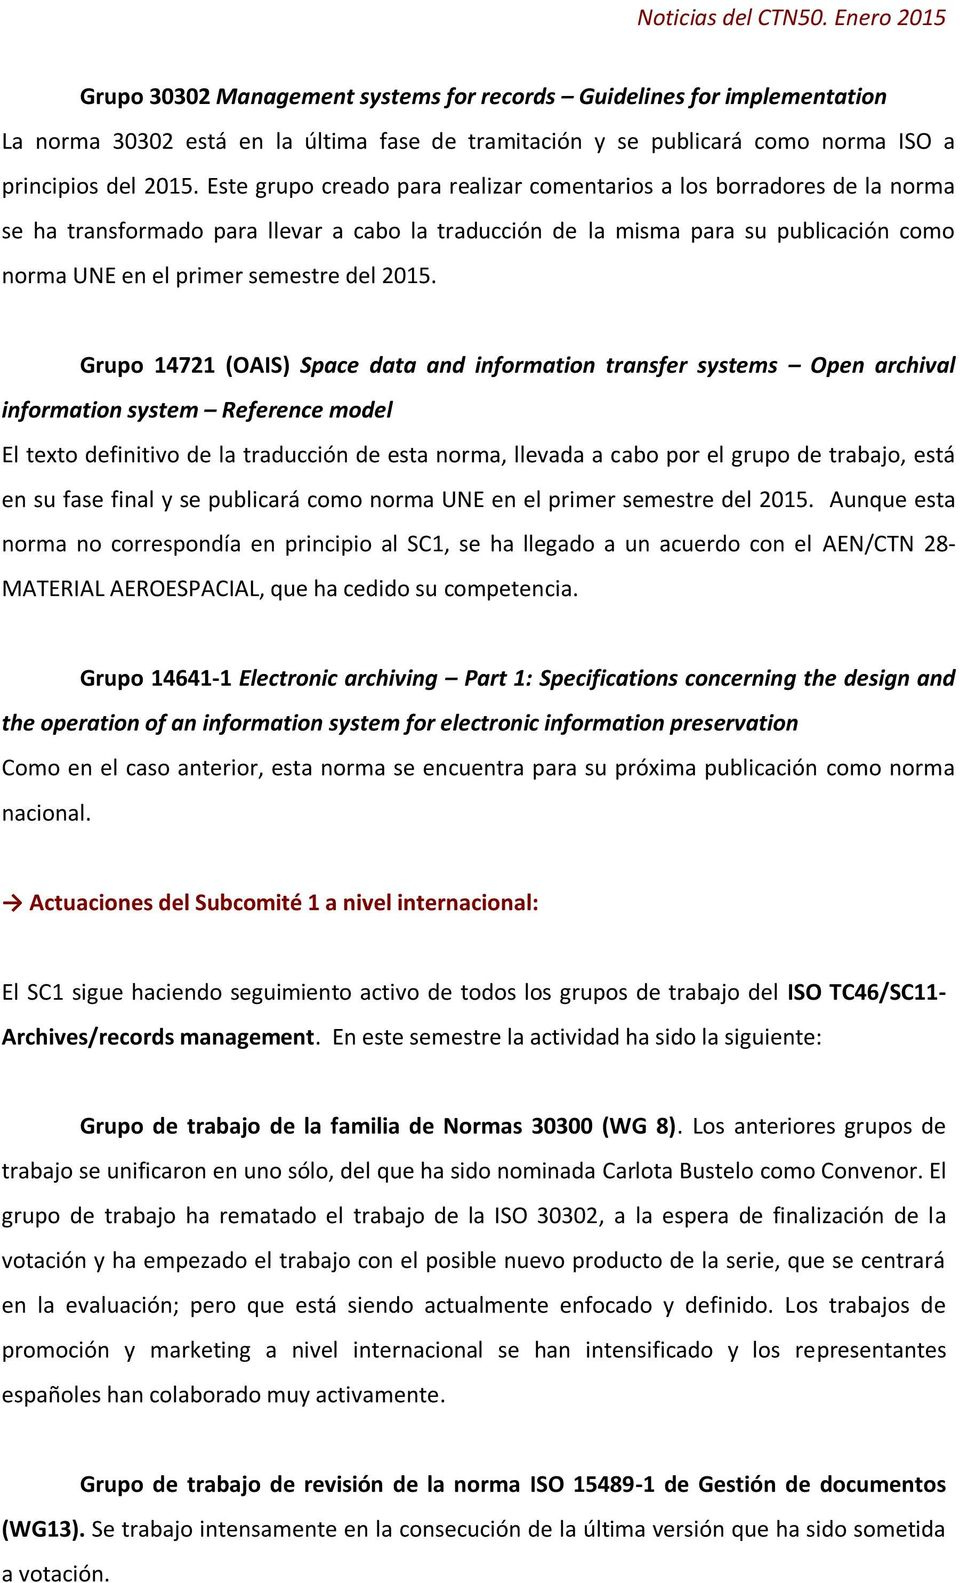 2015. Grupo 14721 (OAIS) Space data and information transfer systems Open archival information system Reference model El texto definitivo de la traducción de esta norma, llevada a cabo por el grupo